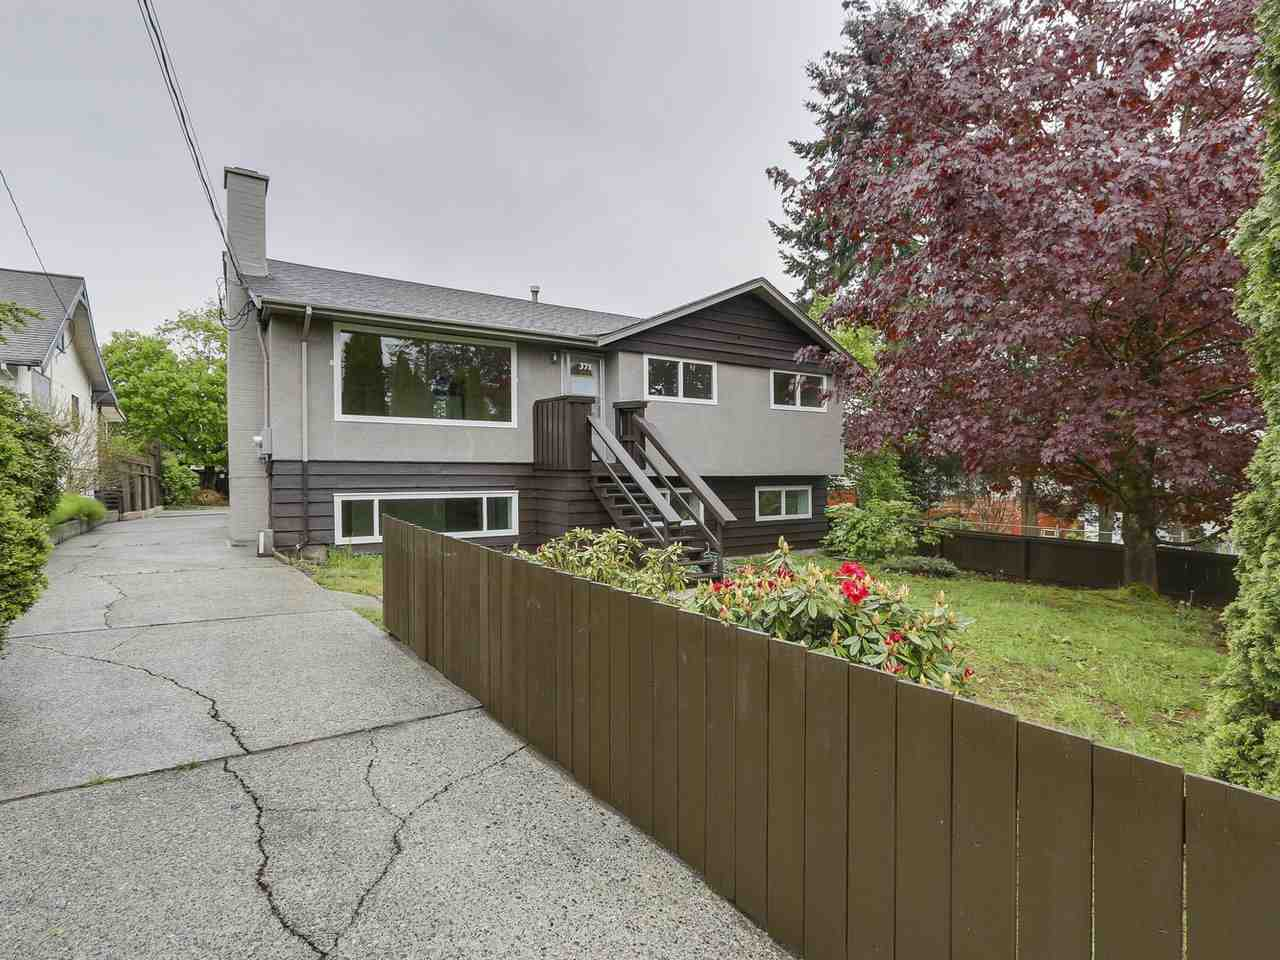 Beautiful, fully renovated home. Enjoy brand new, never used appliances ? washer, dryer, ovens, fridges, & dishwashers. Comes with a legal secondary suite, with separate electrical meters, all upgraded to code and inspected by BCSA. This beautiful home is found in the heart of Coquitlam, close to schools, transit, and shopping! HVAV reduction throughout the entire house, all services in the household have been upgraded as well! OPEN HOUSE: Saturday September 16th, Sunday September 17th 2-4 p.m - - -  Saturday September 23rd, Sunday September 24th 2-4 p.m